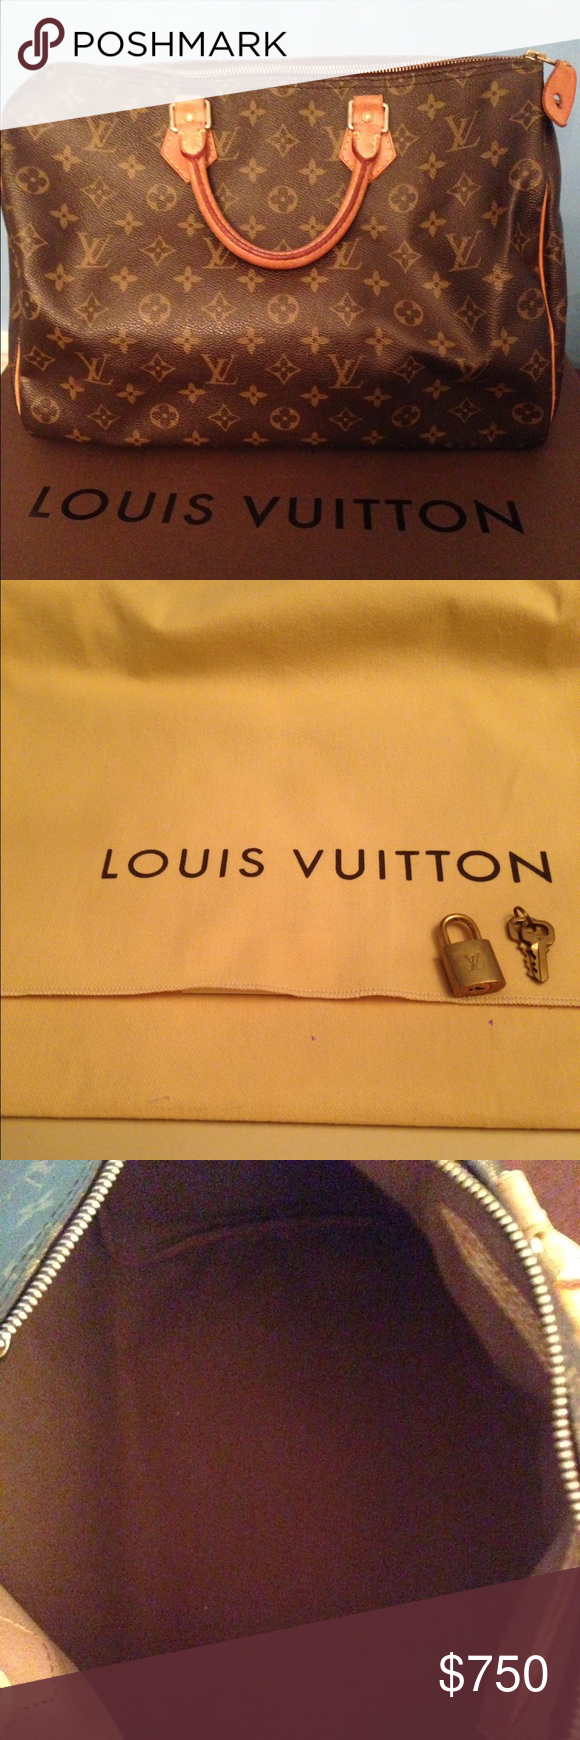 Speedy 35 Authentic Louis Vuitton bag. In great condition. No cracks on canvas or  interior stains. Still have original box and dust bag. Louis Vuitton Bags Satchels